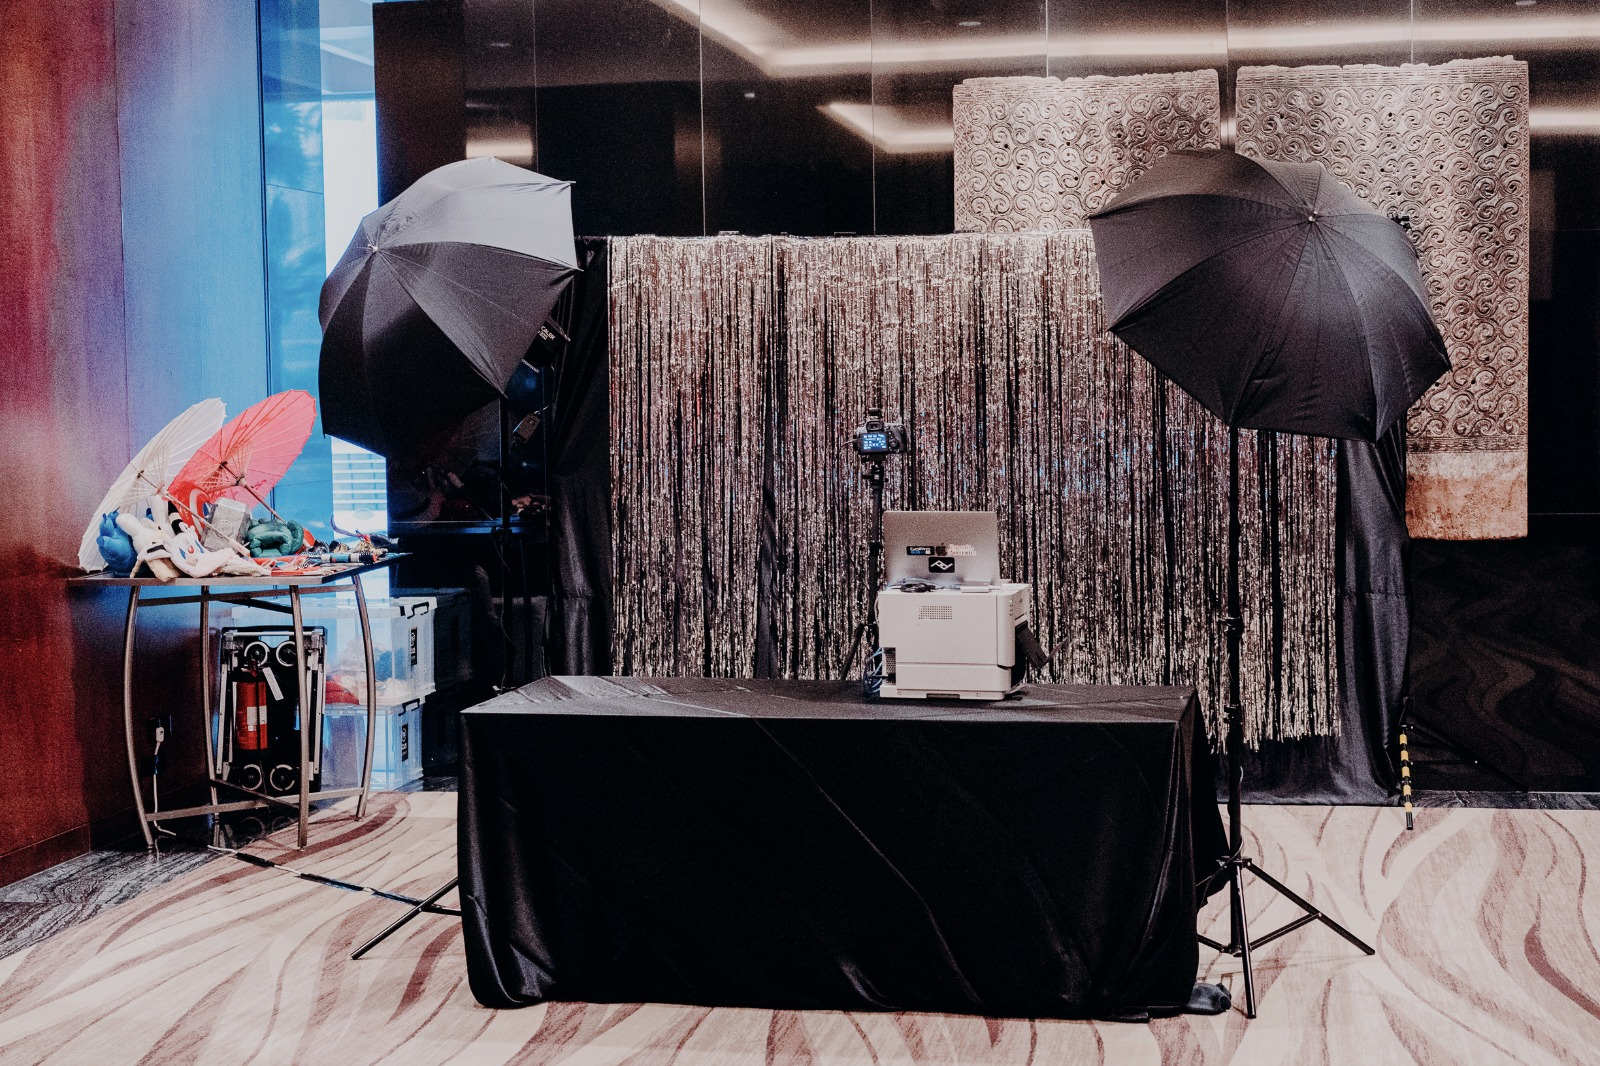 Instant Print Photobooth for events